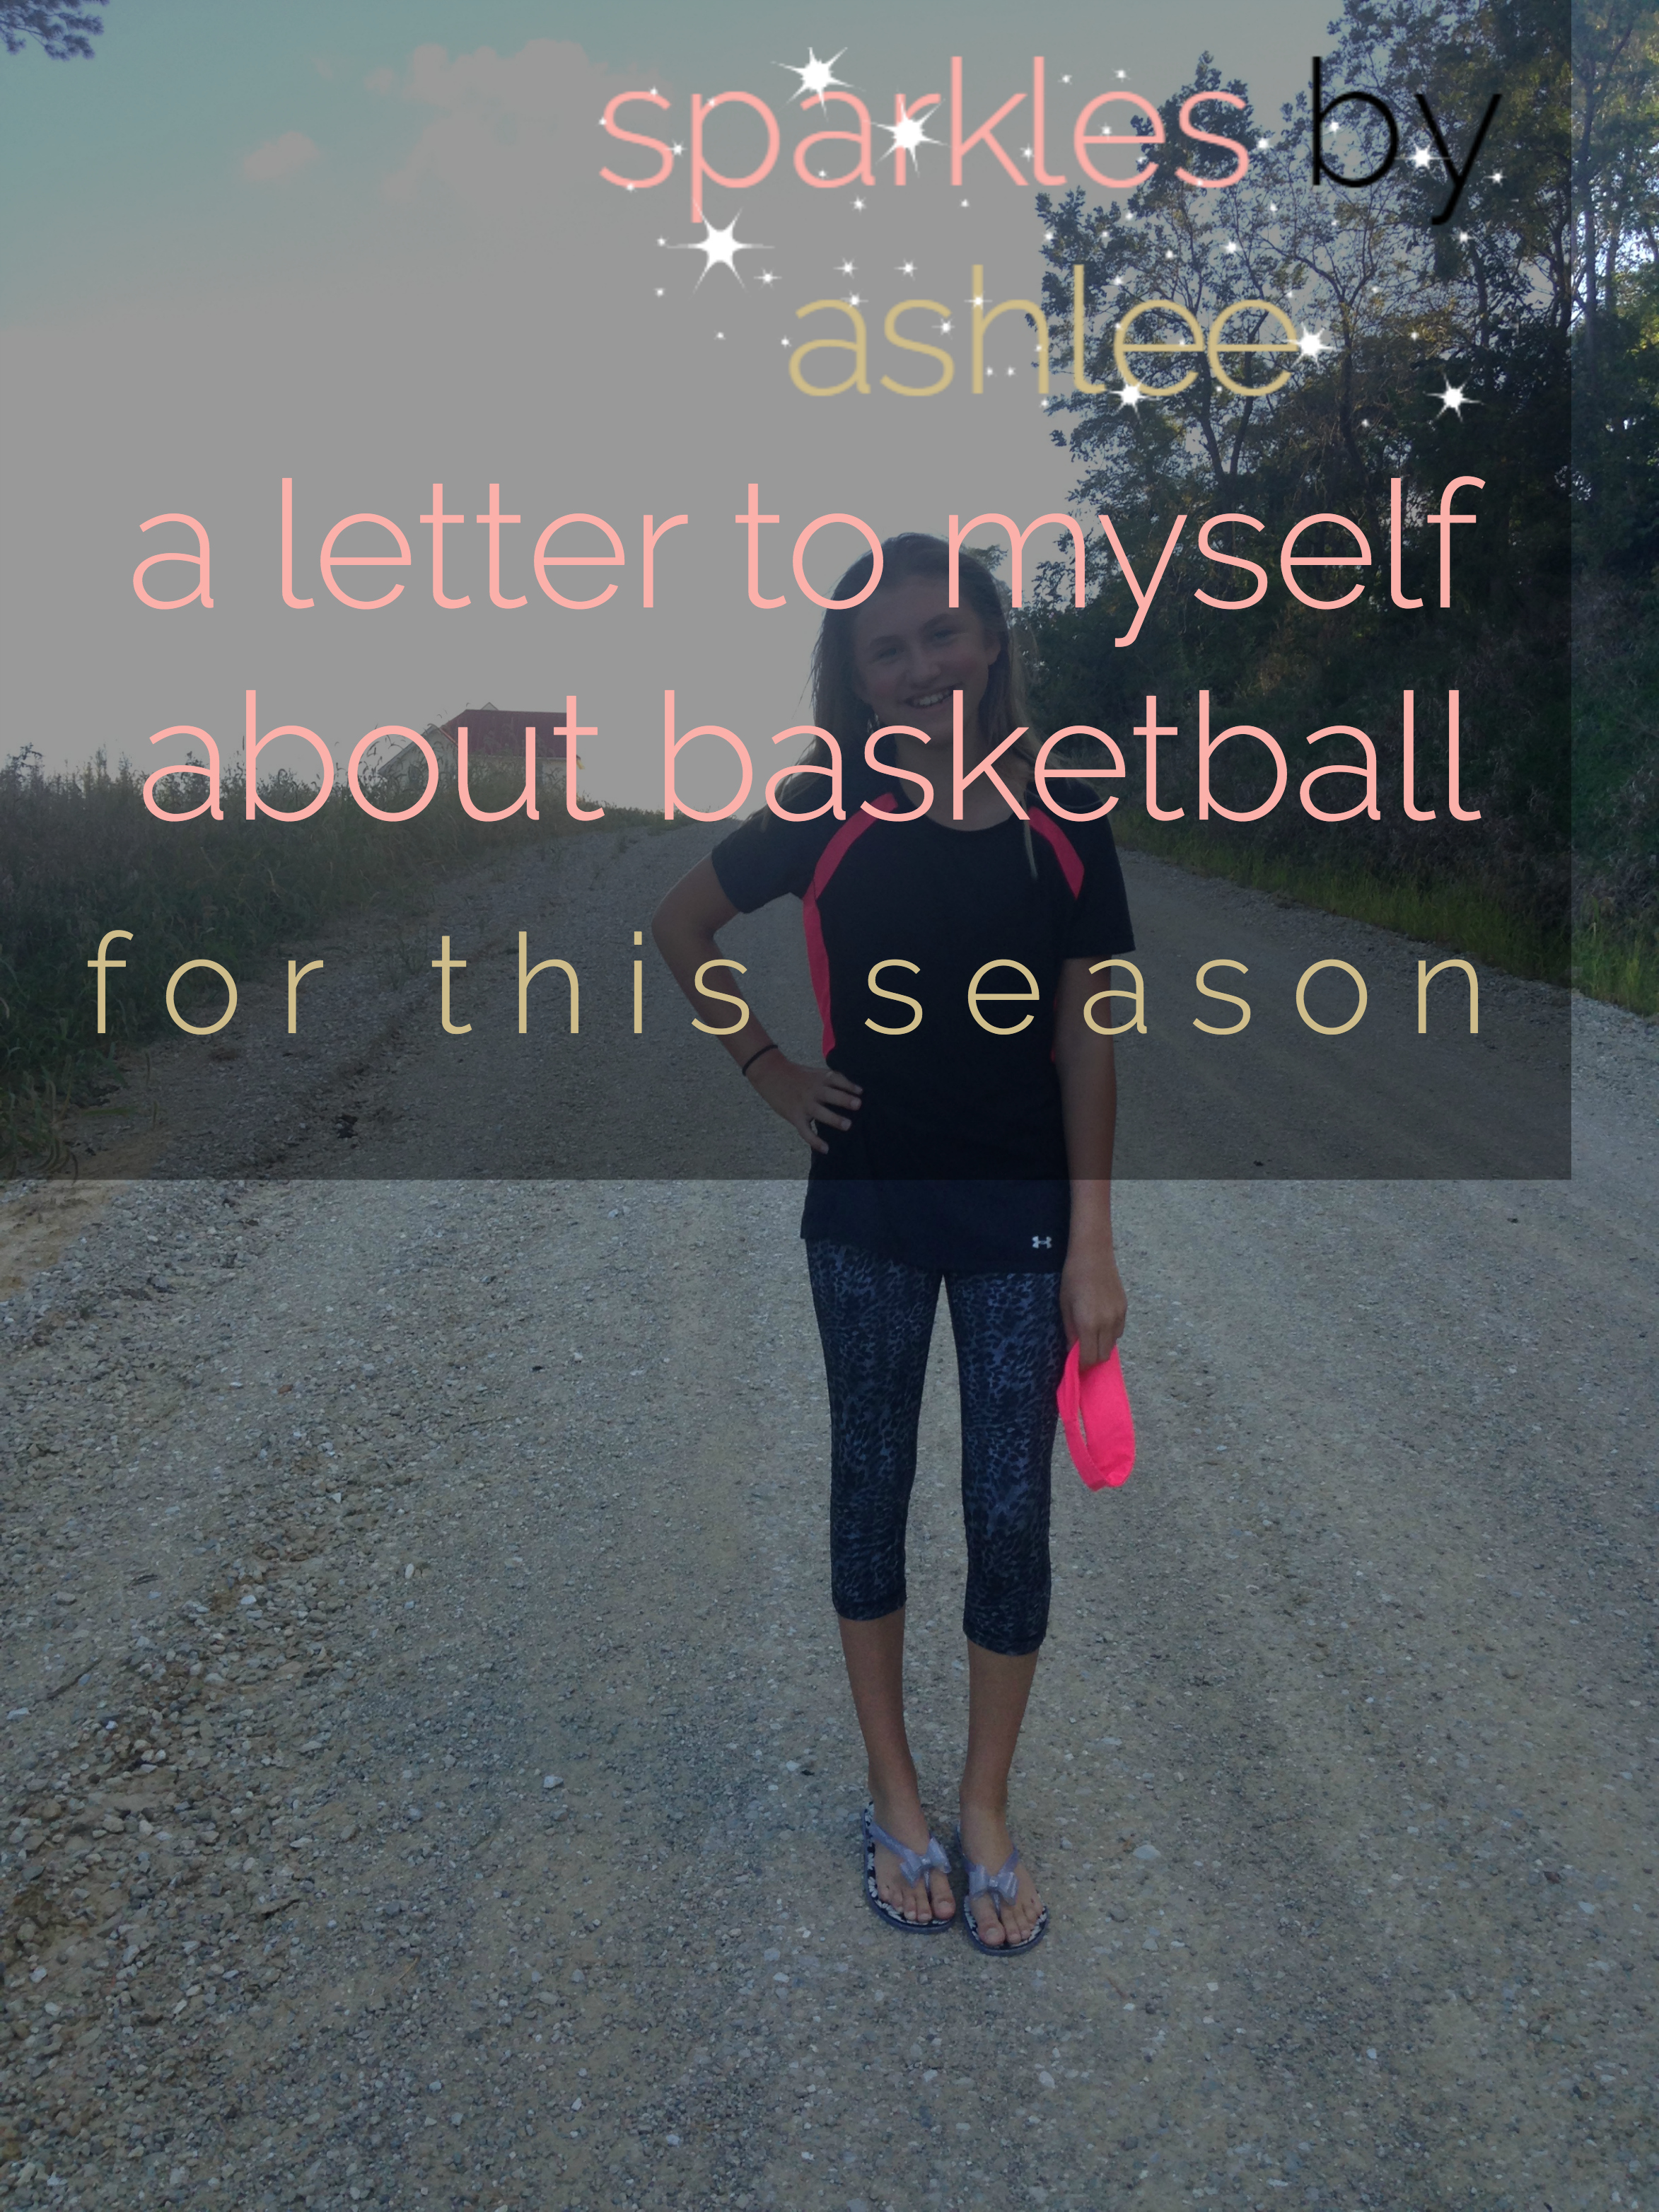 A-Letter-to-Myself-About-Basketball-Sparkles-by-Ashlee.jpg